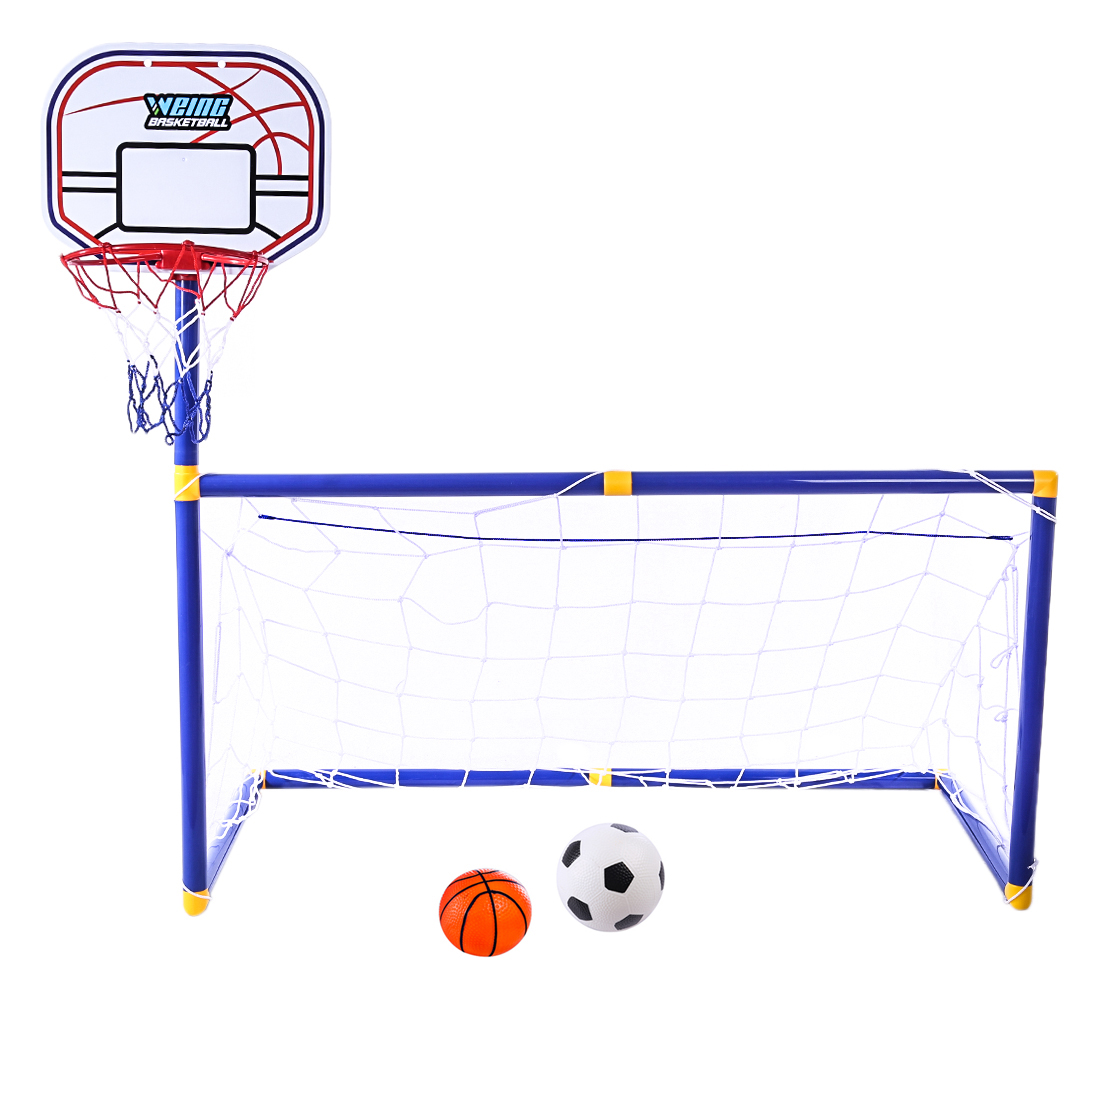 Rowsfire  2 In 1 Children Sports Equipment Football Goal Basketball Stands For Kids Outdoor Toy - ZG270-30